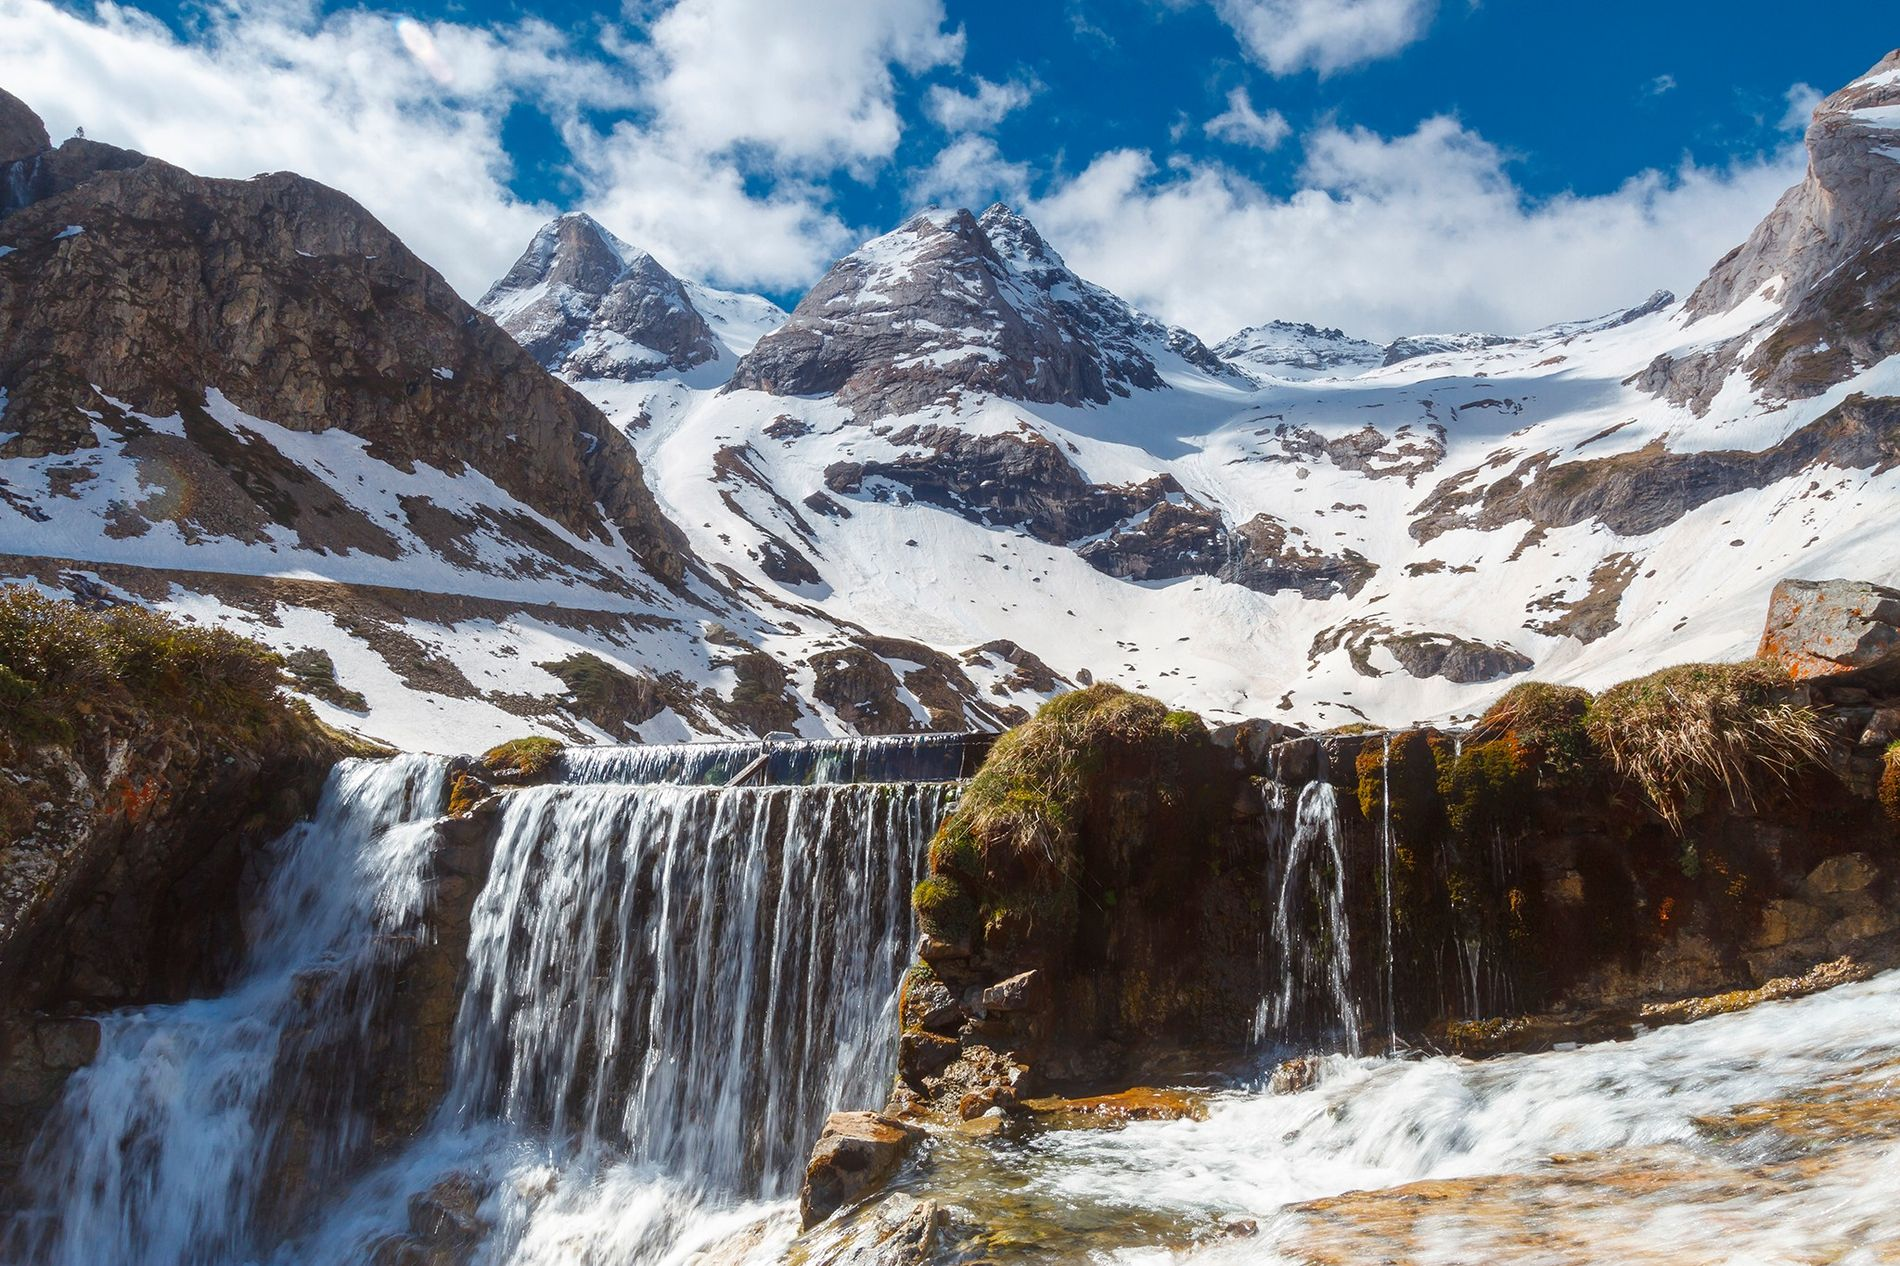 A seismometer in the Pyrenees Mountains is listening to the sounds of river ice melting and refreezing. Using earthquake monitors to eavesdrop on nature can help scientists more closely monitor climate change.